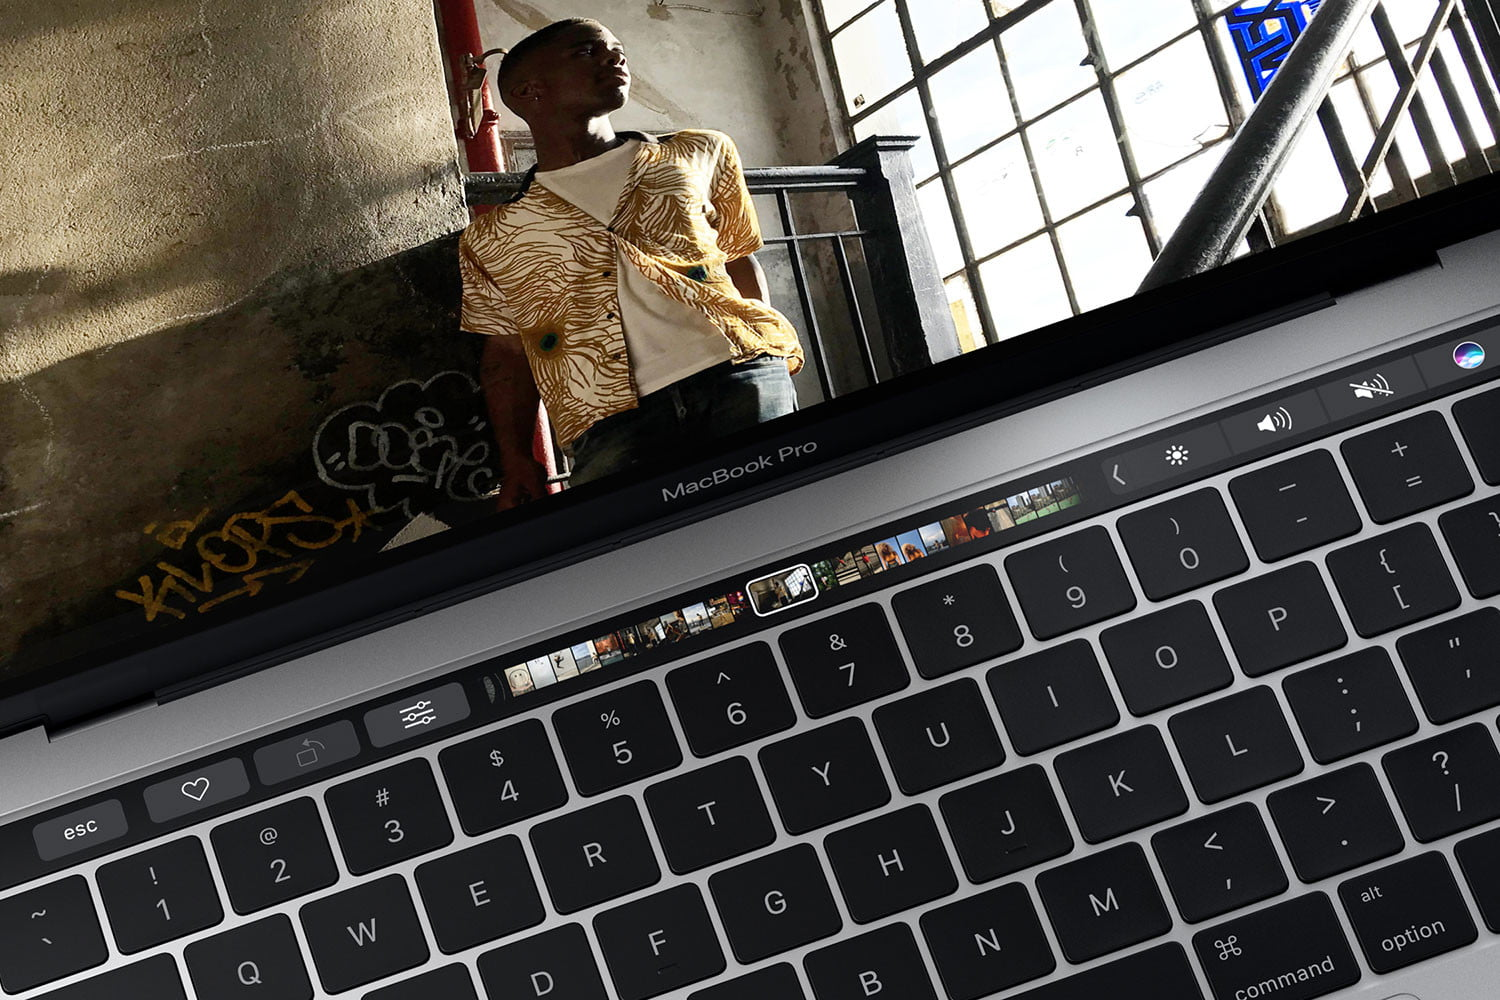 hp spectre x360 convertible vs macbook pro 13 inch 2016 main